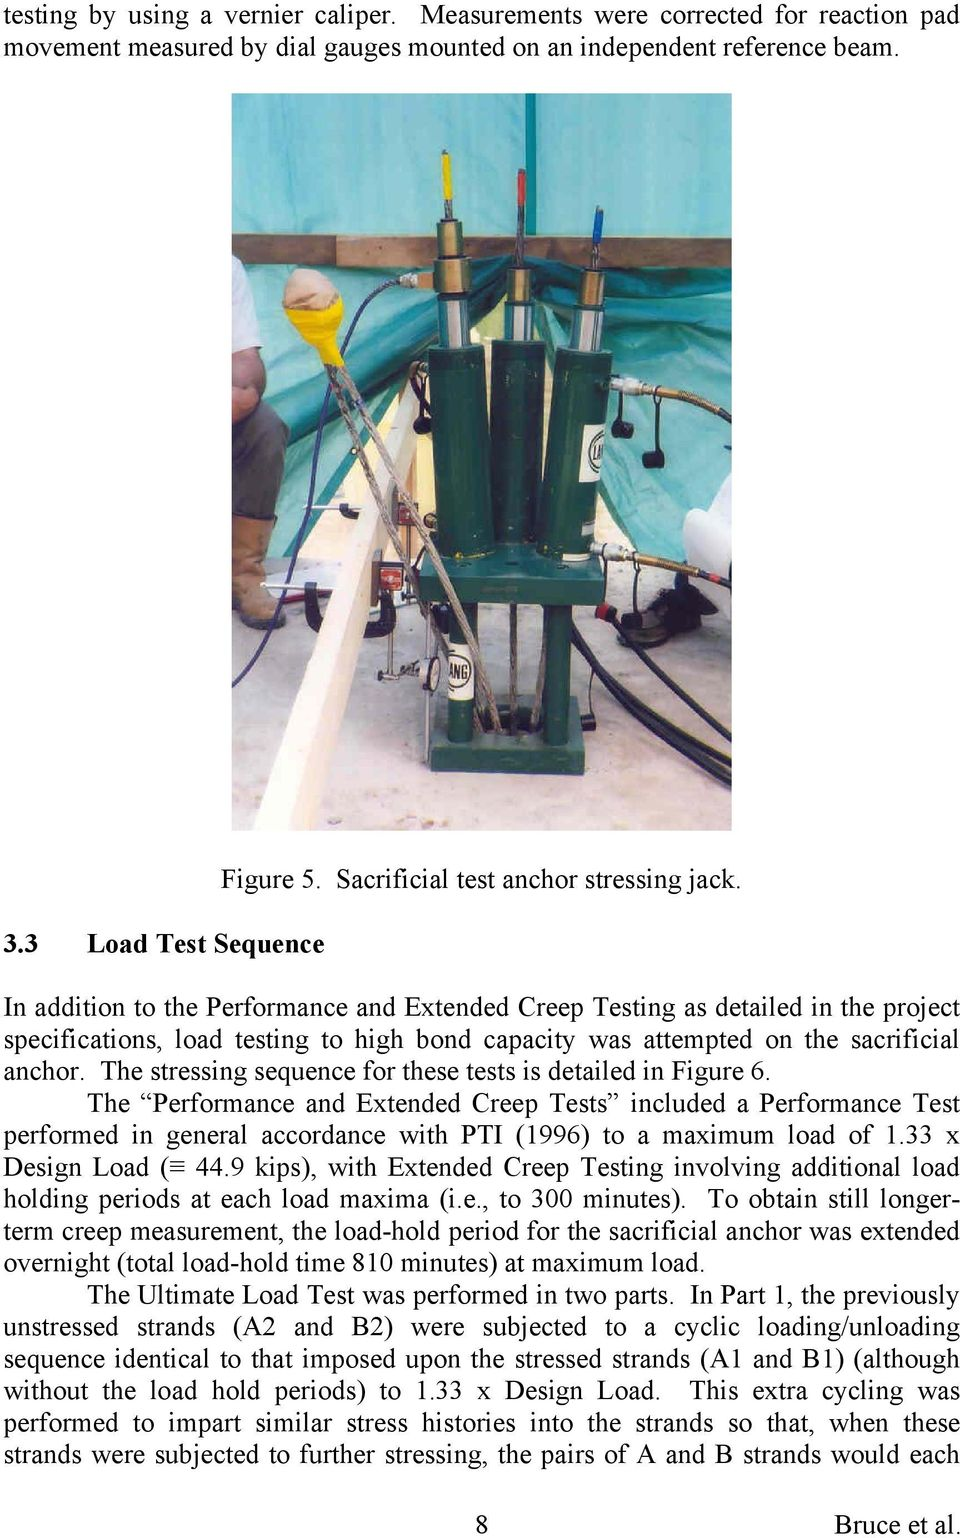 In addition to the Performance and Extended Creep Testing as detailed in the project specifications, load testing to high bond capacity was attempted on the sacrificial anchor.